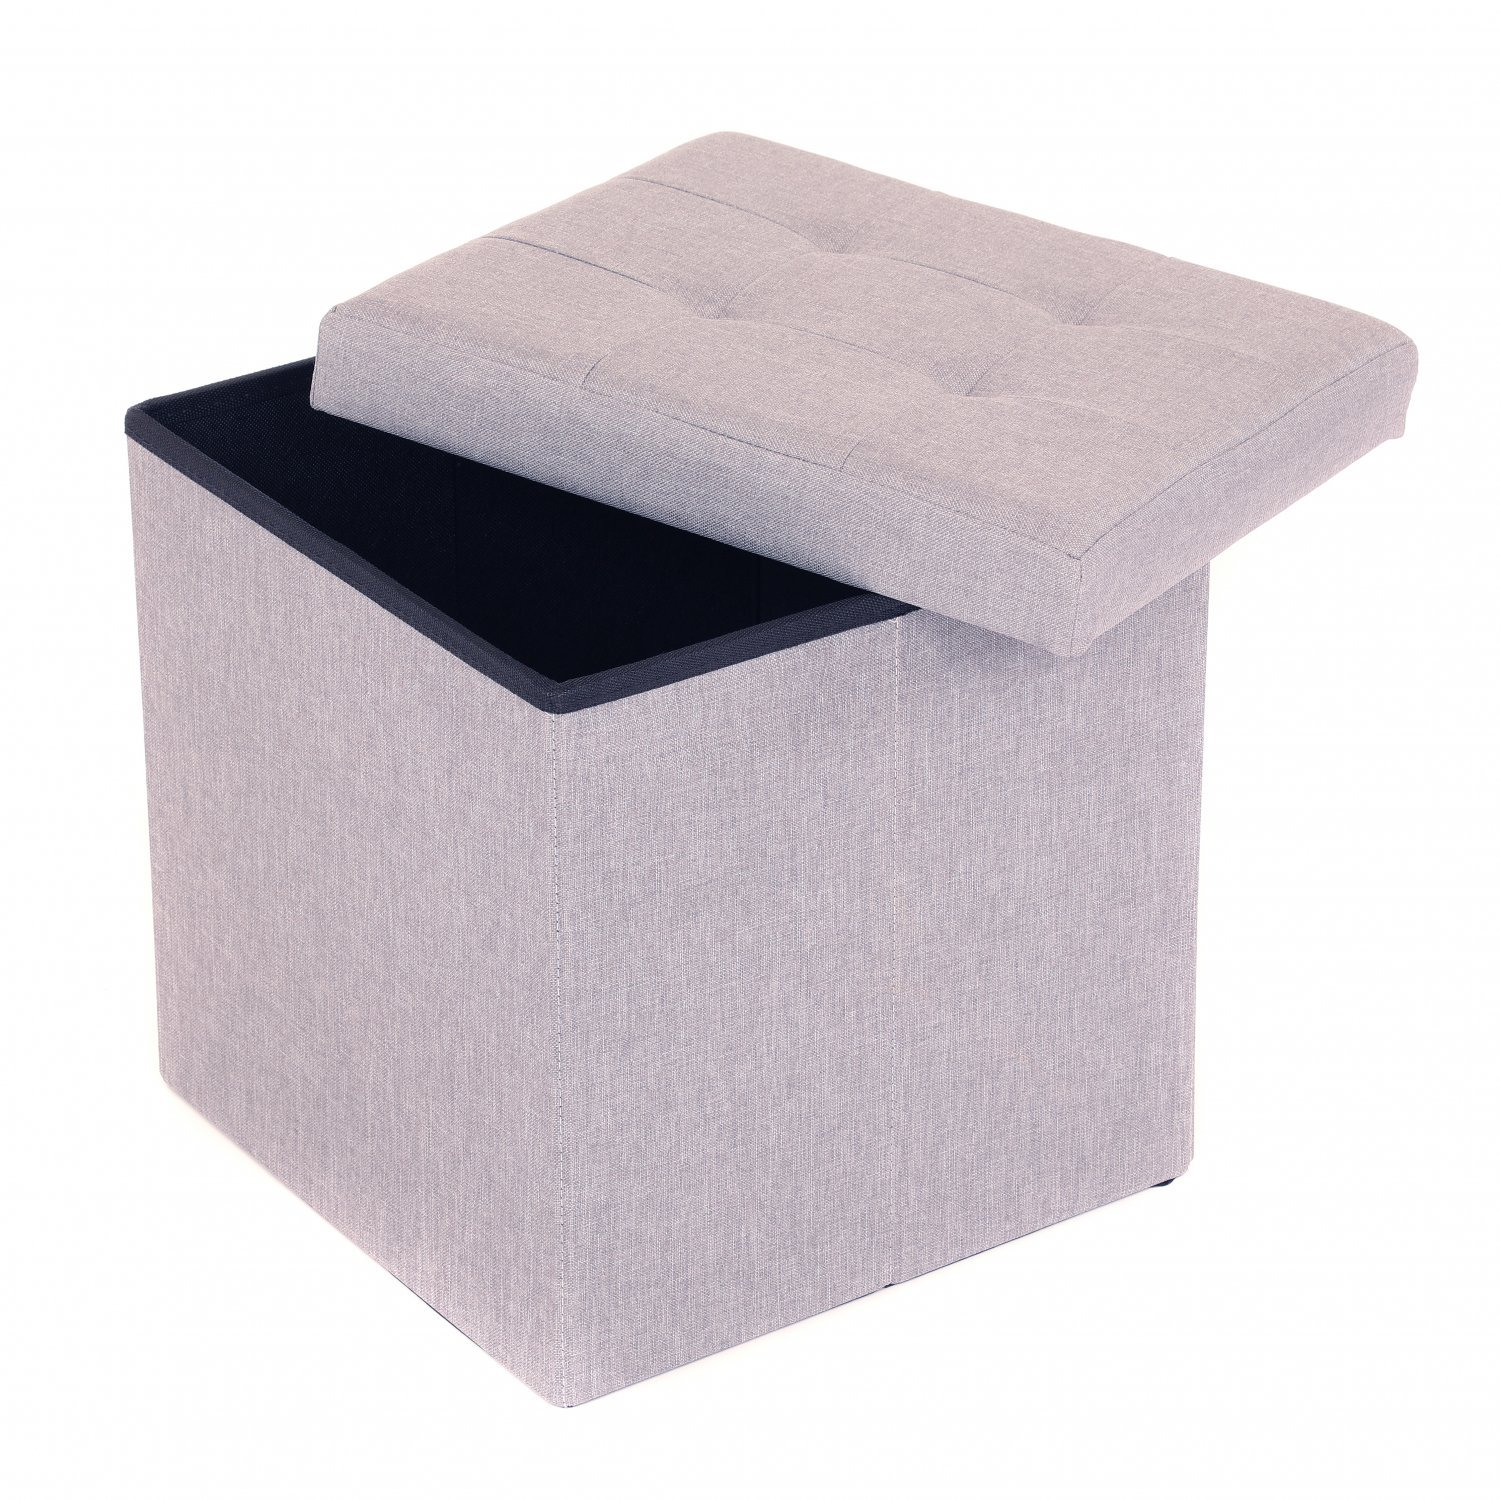 Sensational Details About New Small Grey Linen Folding Ottoman Storage Chest Box Seat Stool Bench Gmtry Best Dining Table And Chair Ideas Images Gmtryco